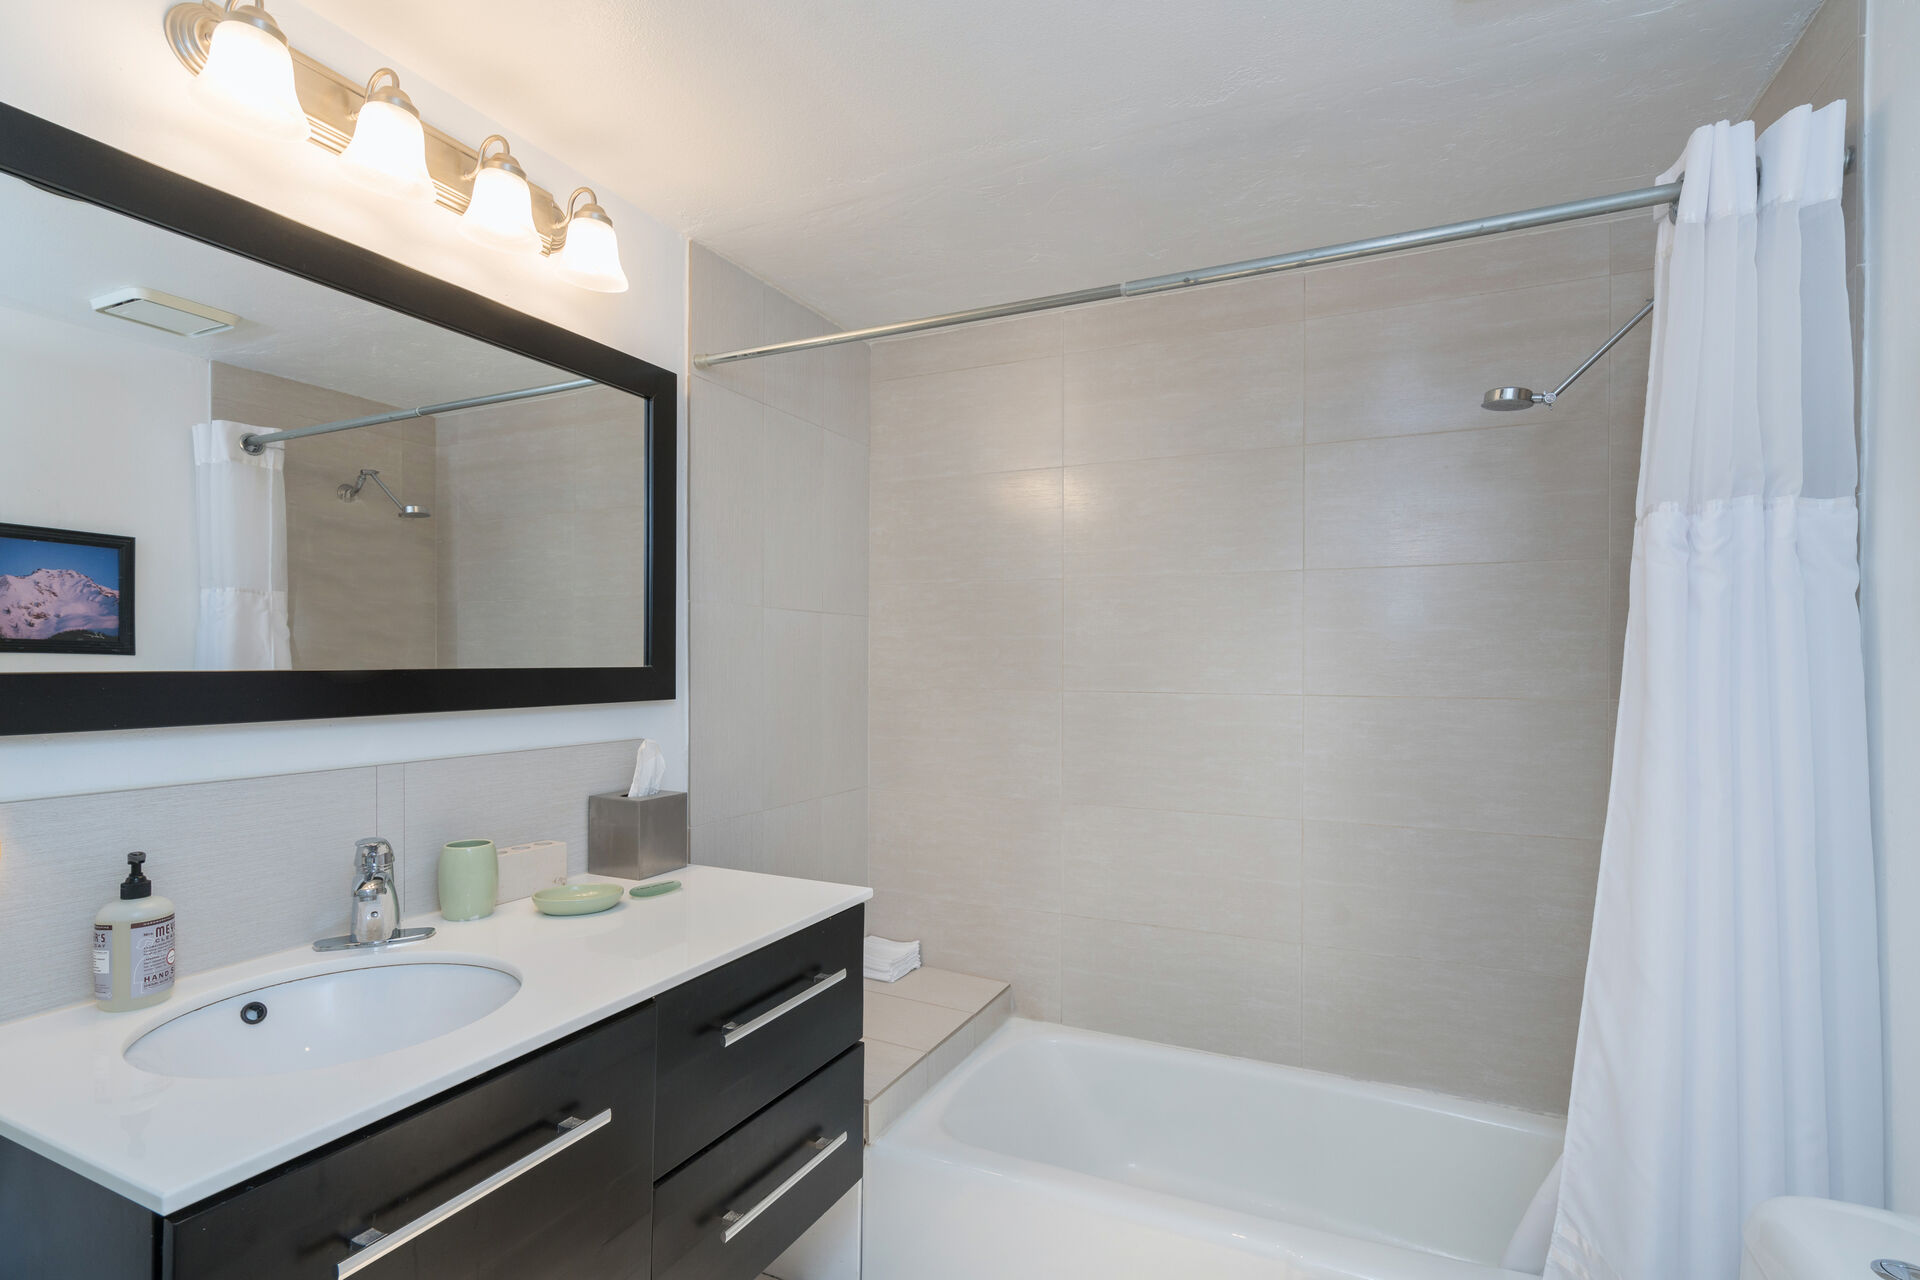 Vanity sink by a large shower in a bathroom.